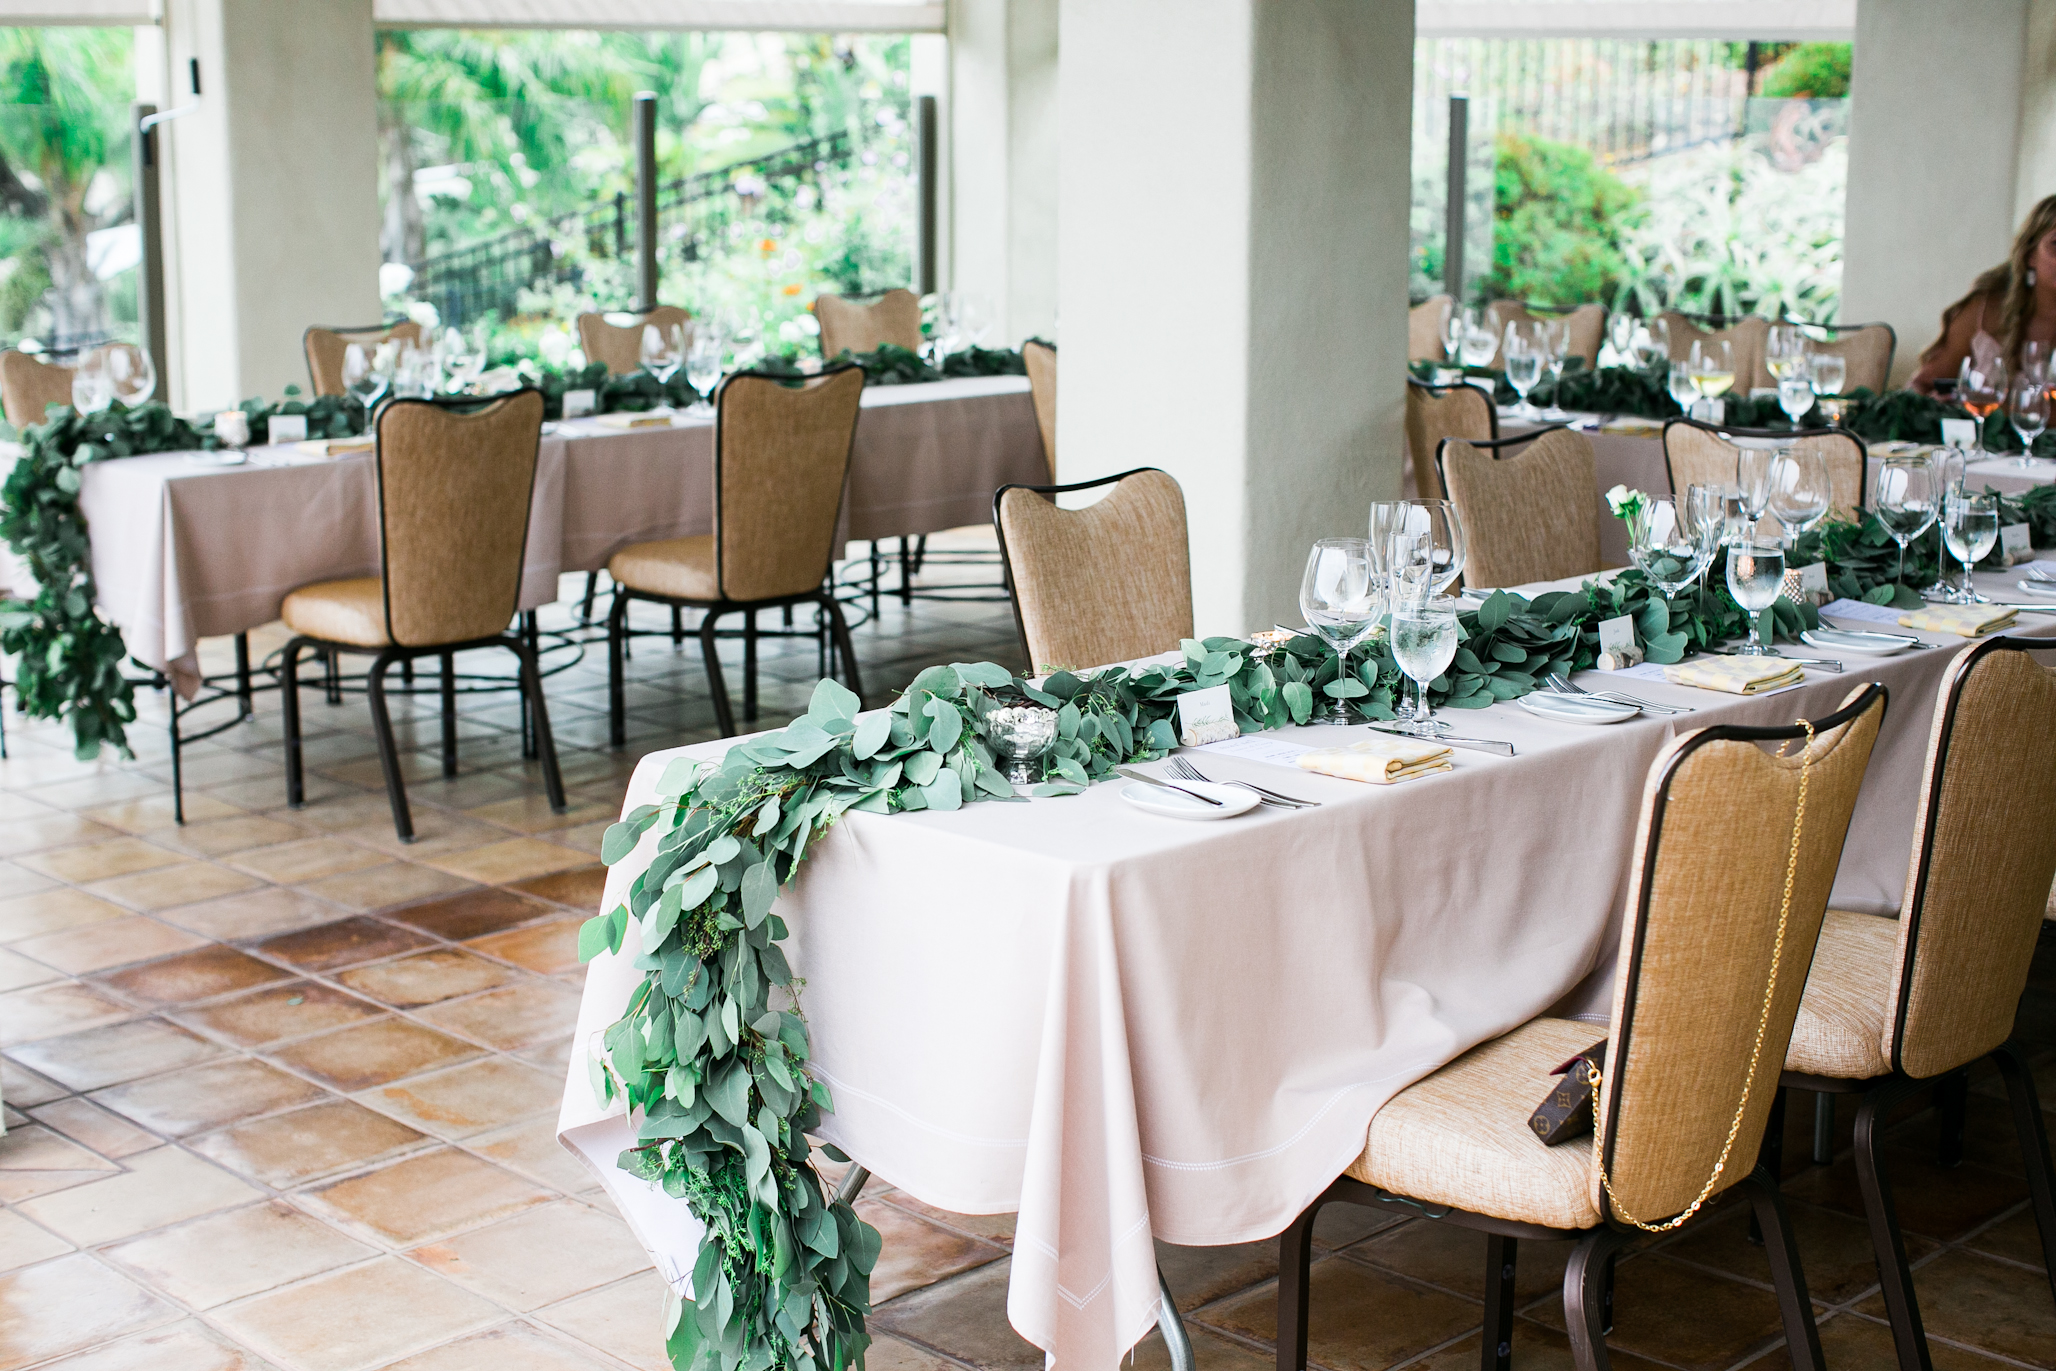 Jessica and and her bridesmaids decorated this beautiful dinner area all by themselves. So beautiful.